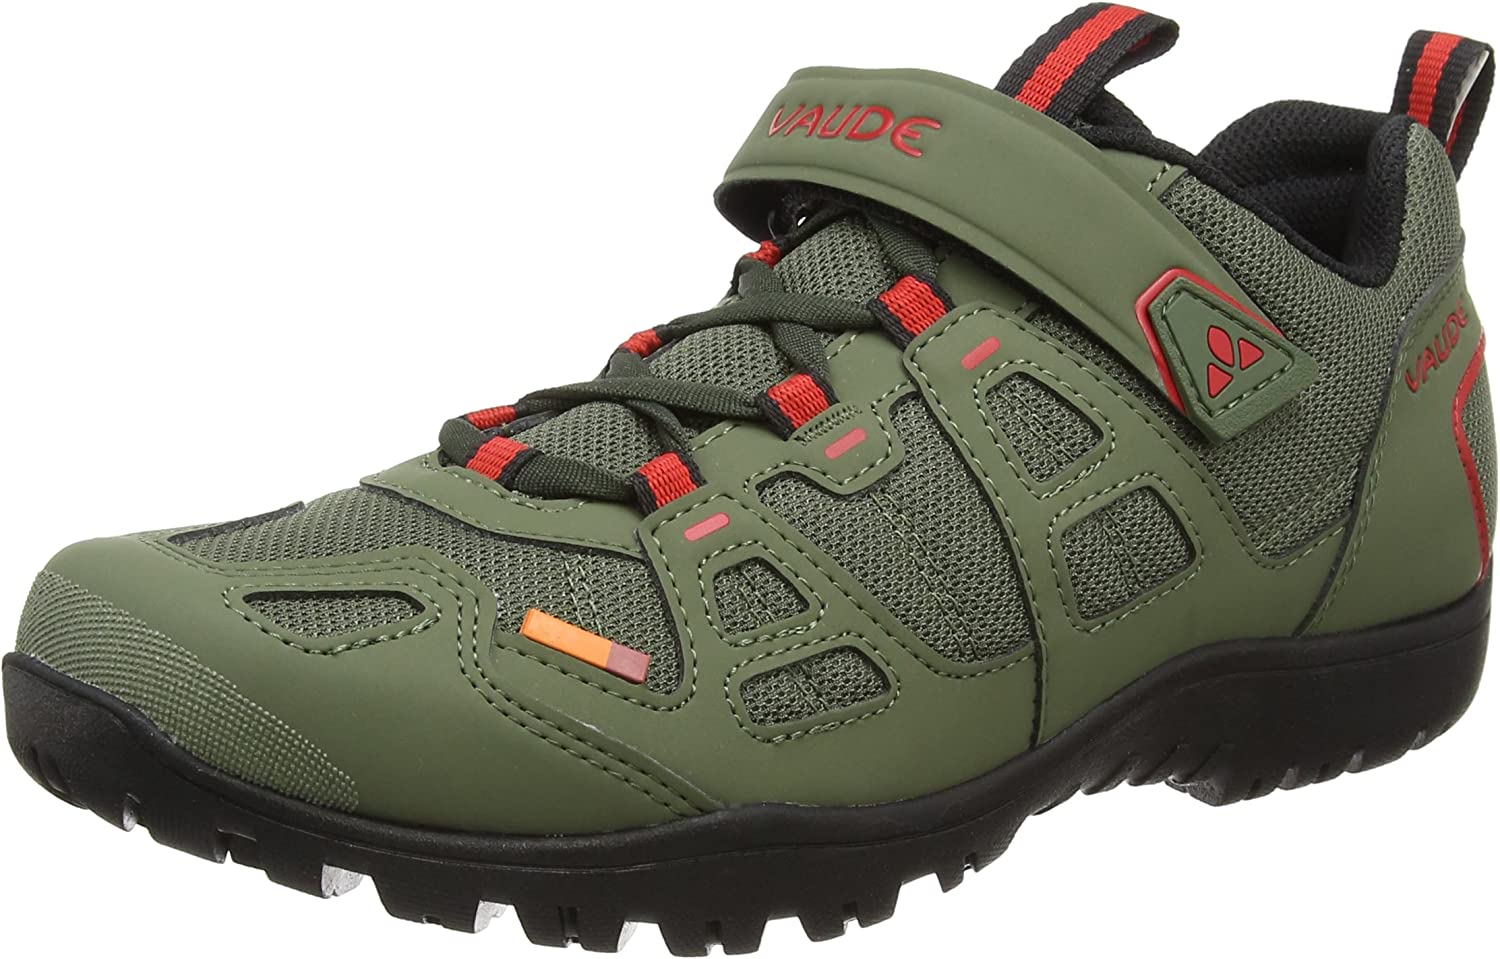 Vaude Men's Kelby Tr Mountain Biking shoes